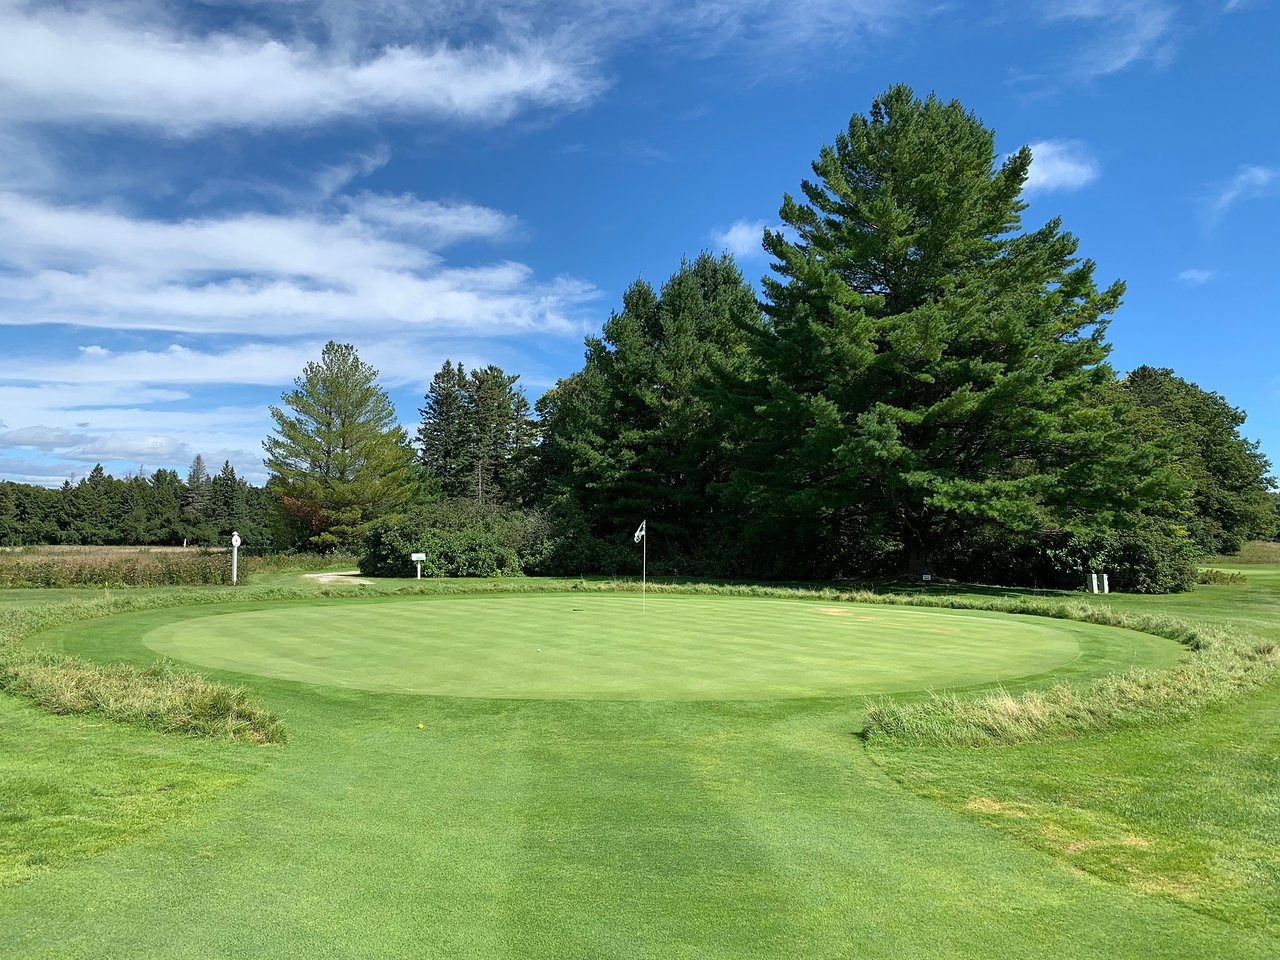 Brush Your Skills At The Unique Golf Courses Along With The Views, Mackinac Island